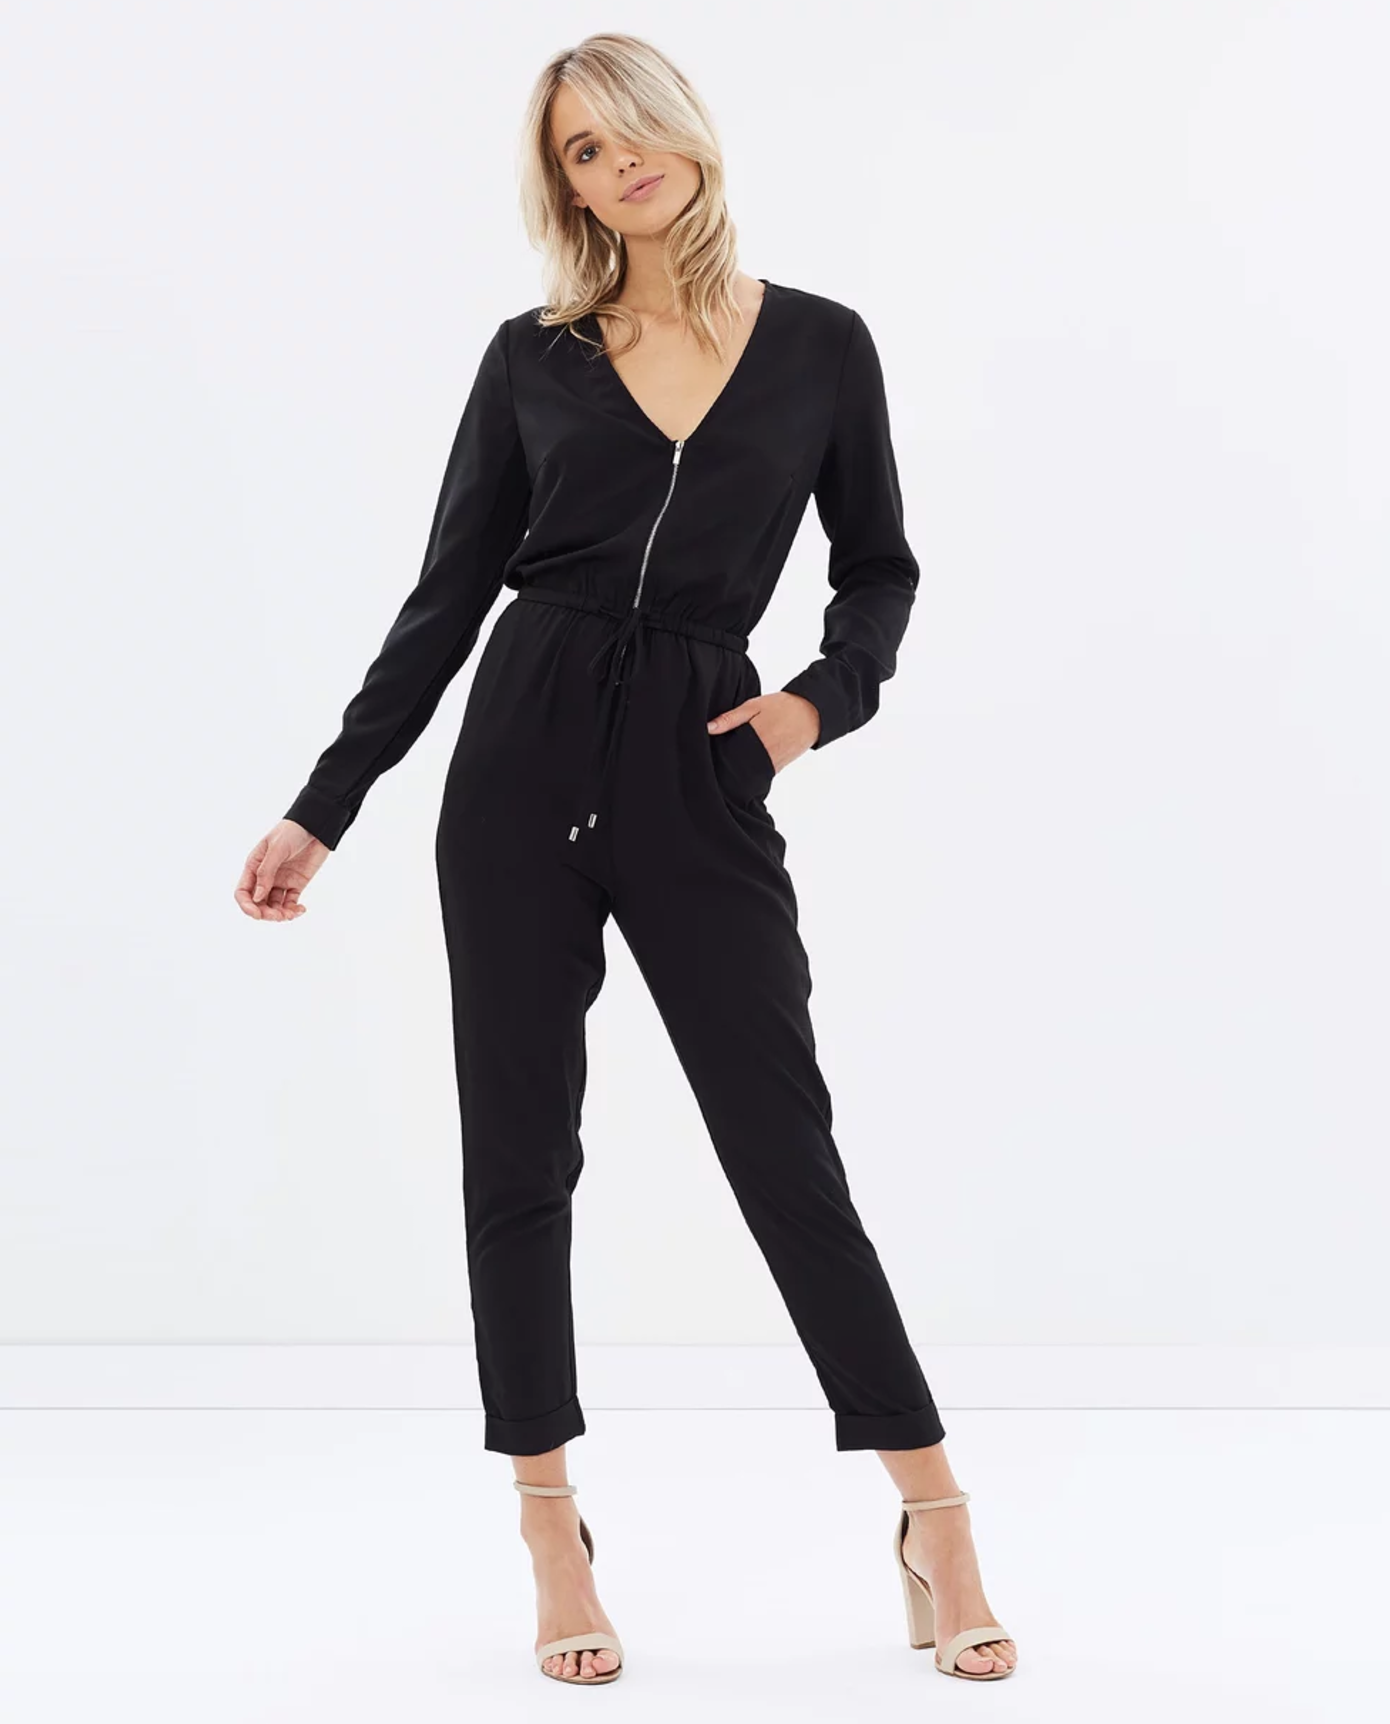 Atmos & Here Demi zip front jumpsuit $89.95